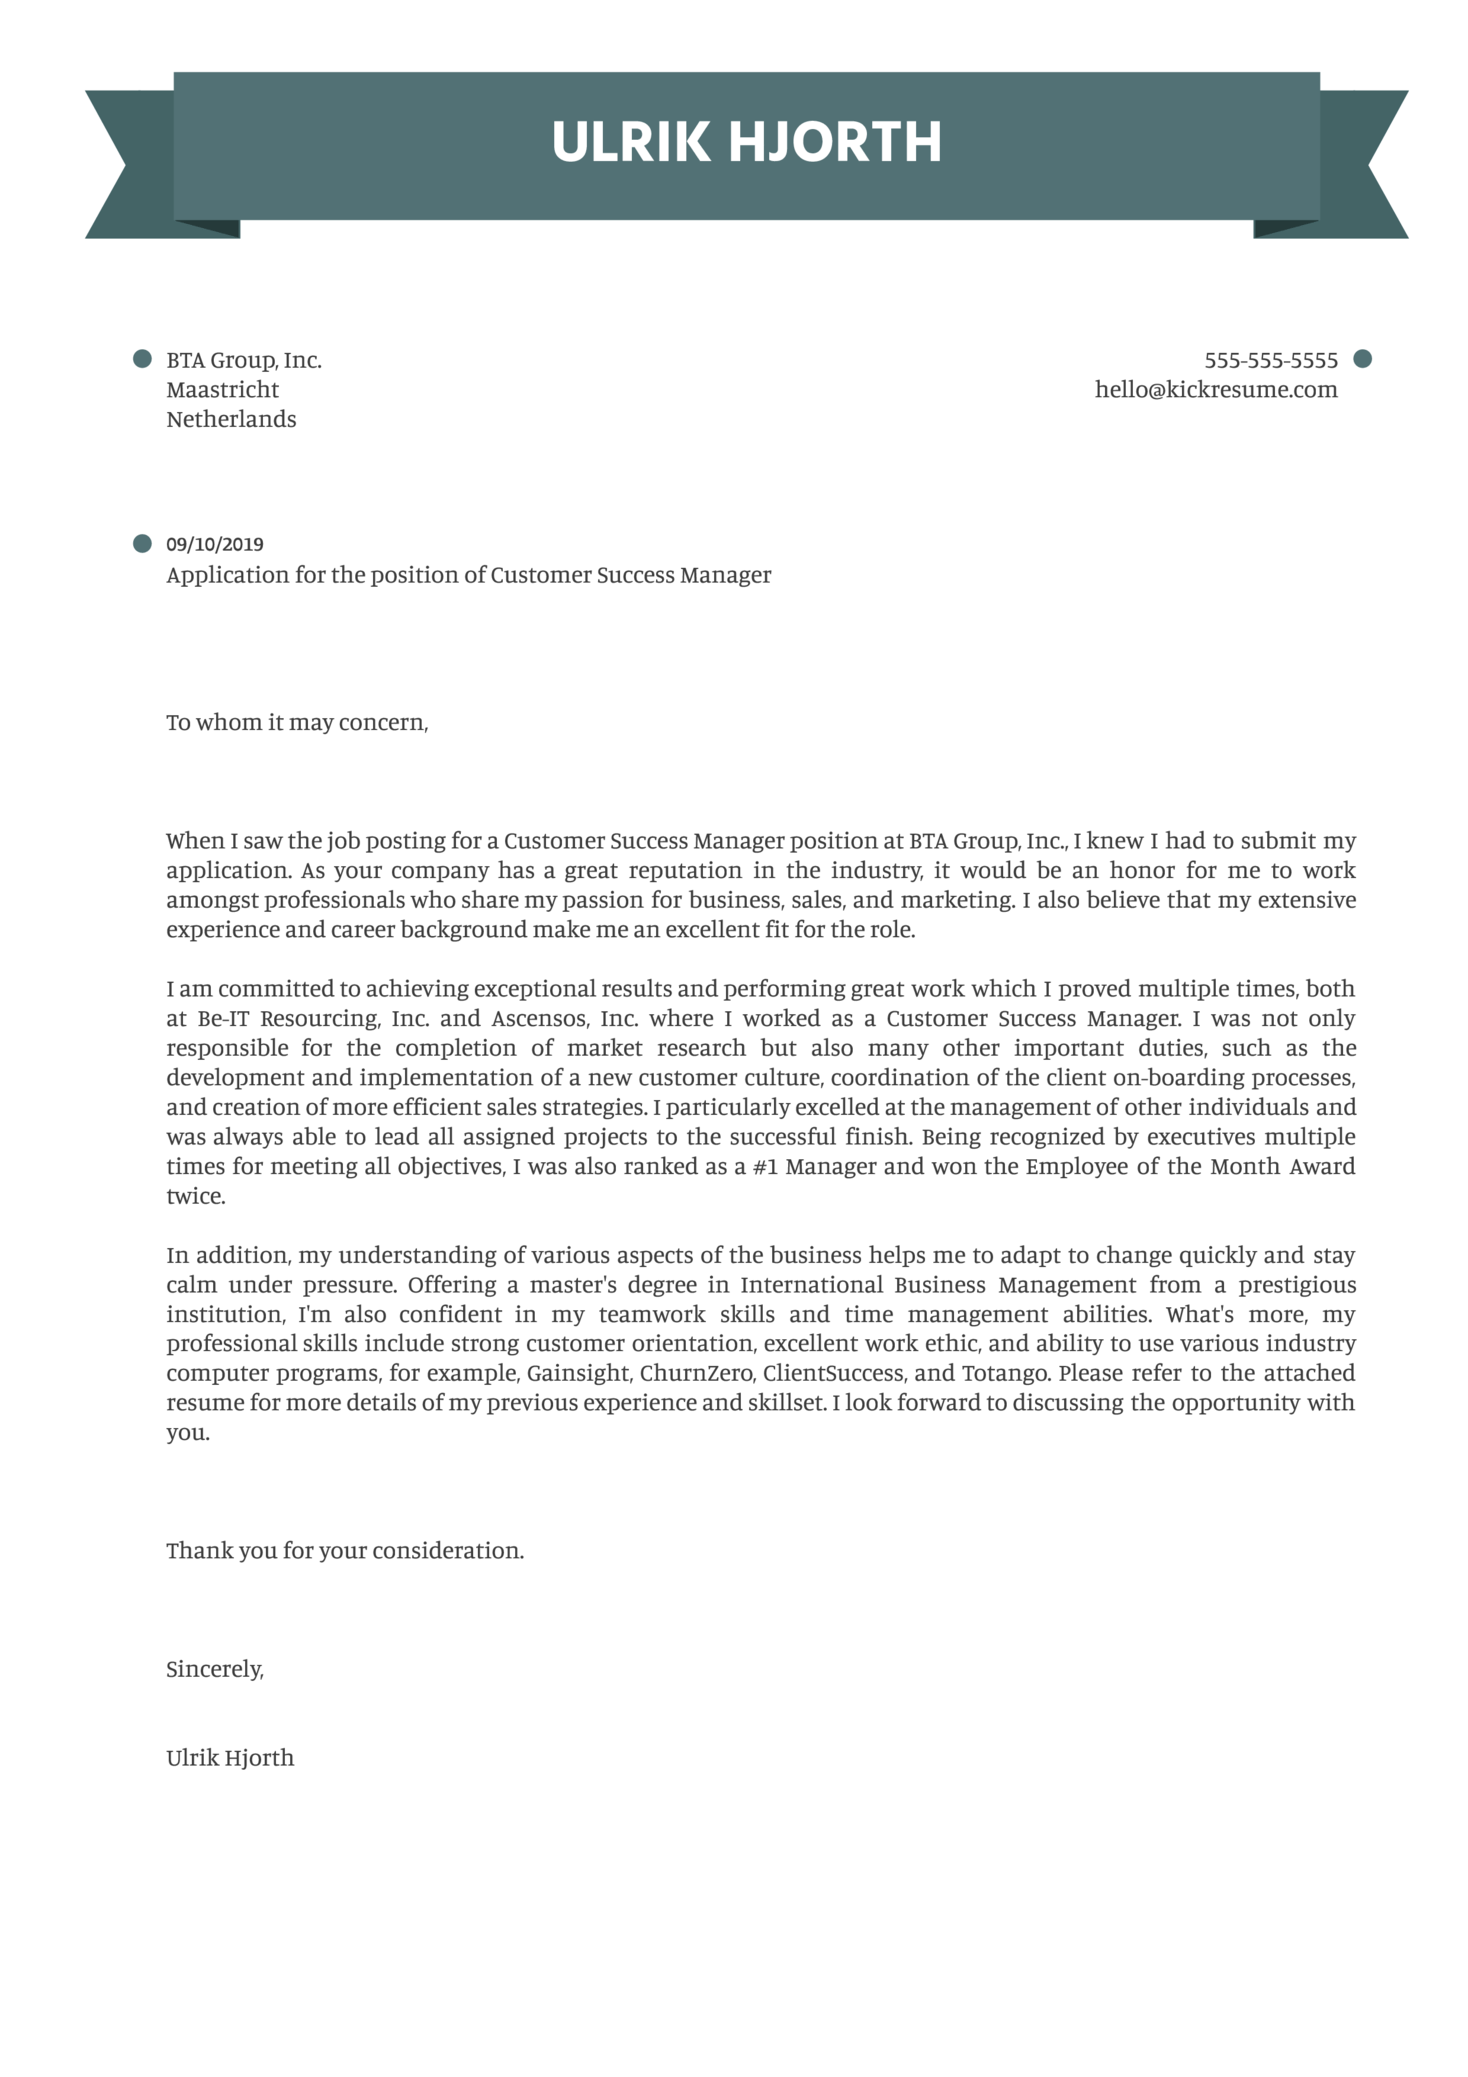 Customer Success Manager Cover Letter Example